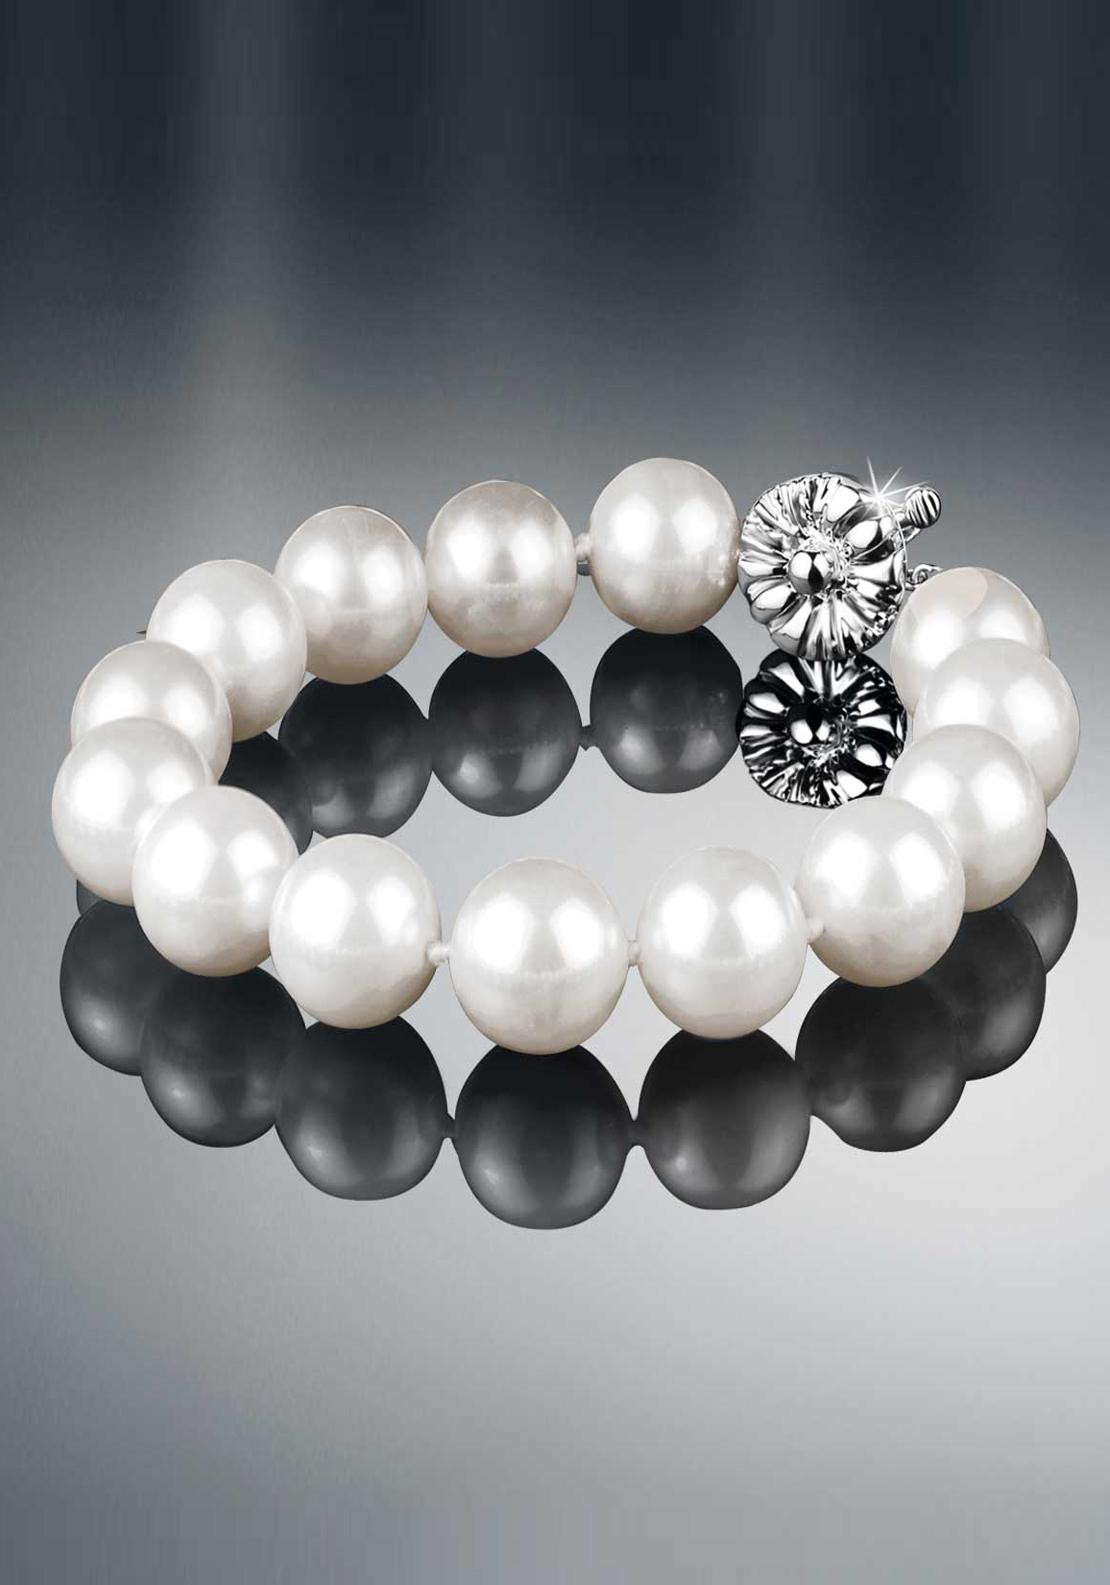 Newbridge Vintage Grace Kelly Bracelet, Pearl